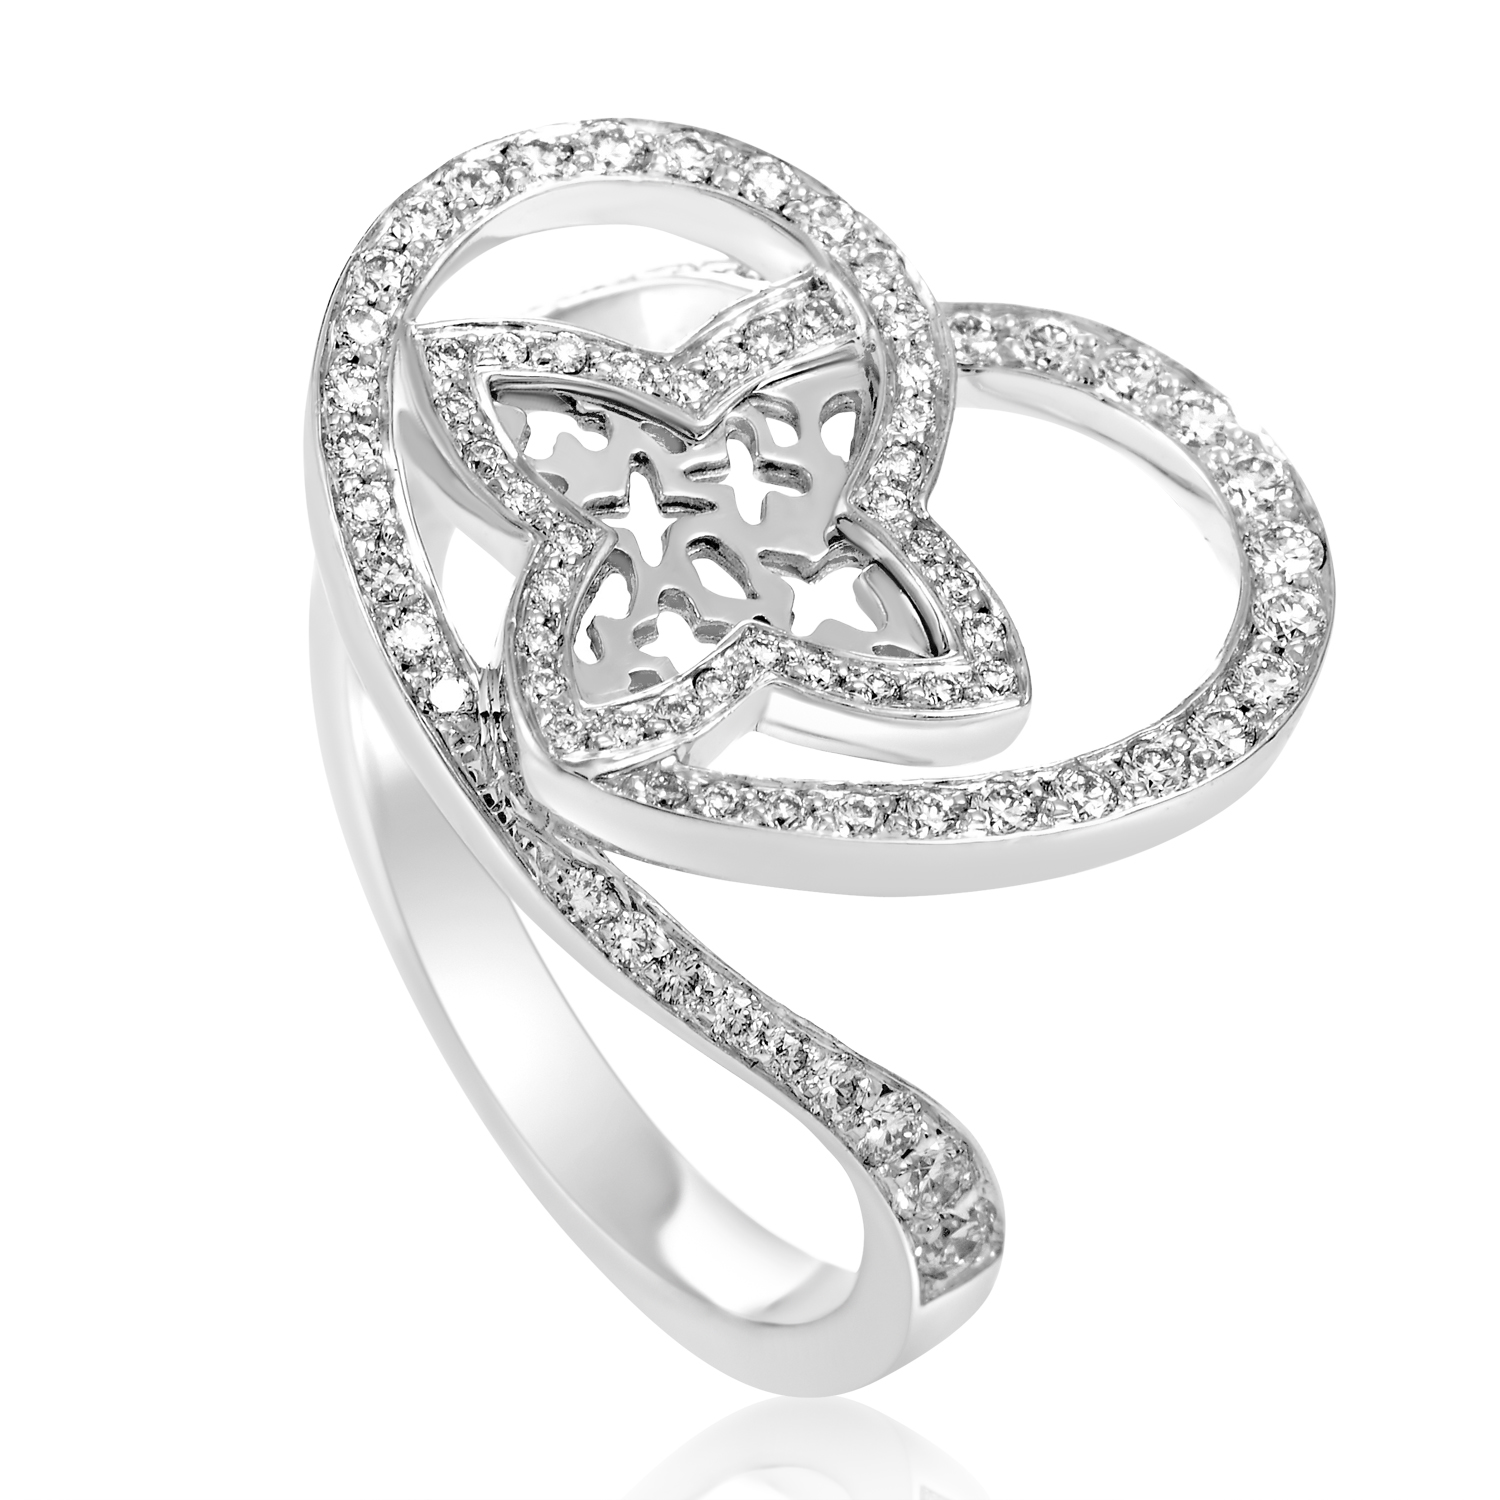 Louis Vuitton Idylle Blossom Women's 18K White Gold Diamond Heart Ring